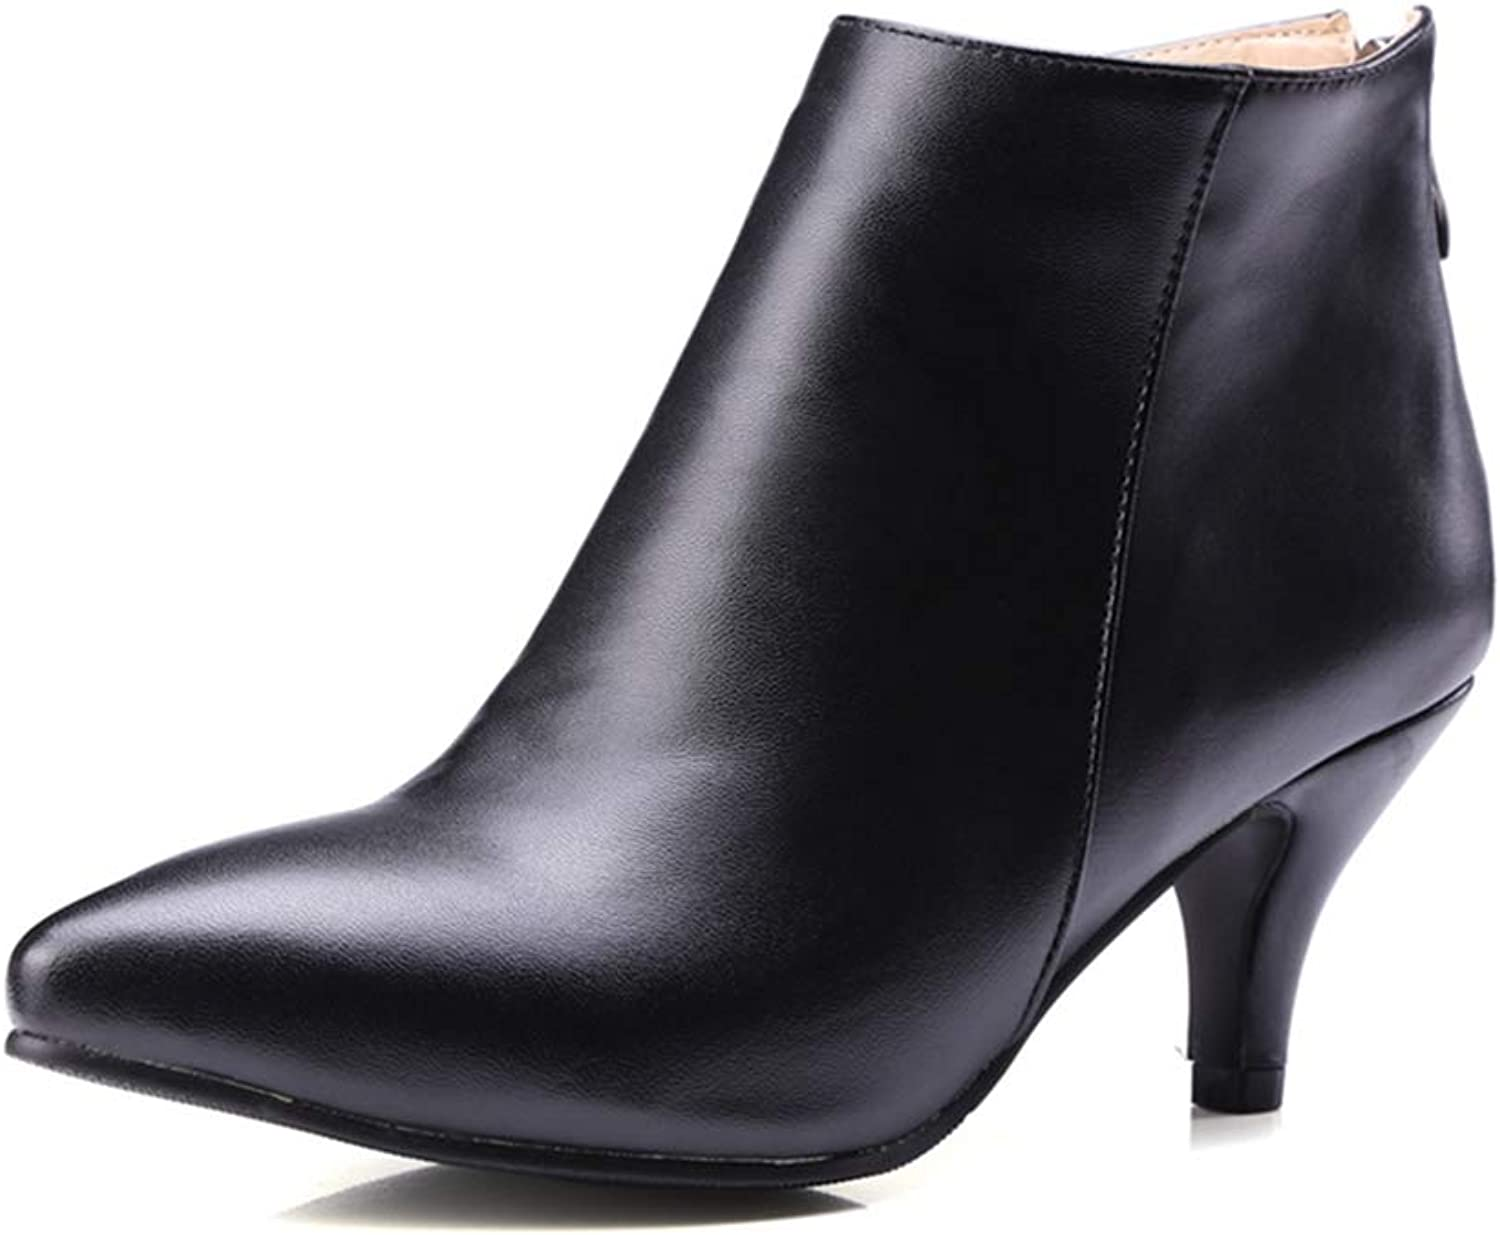 GIY Women's Sexy Pointed Toe Dress Ankle Boots Stiletto High Heel Leather Zipper Comfort Short Booties